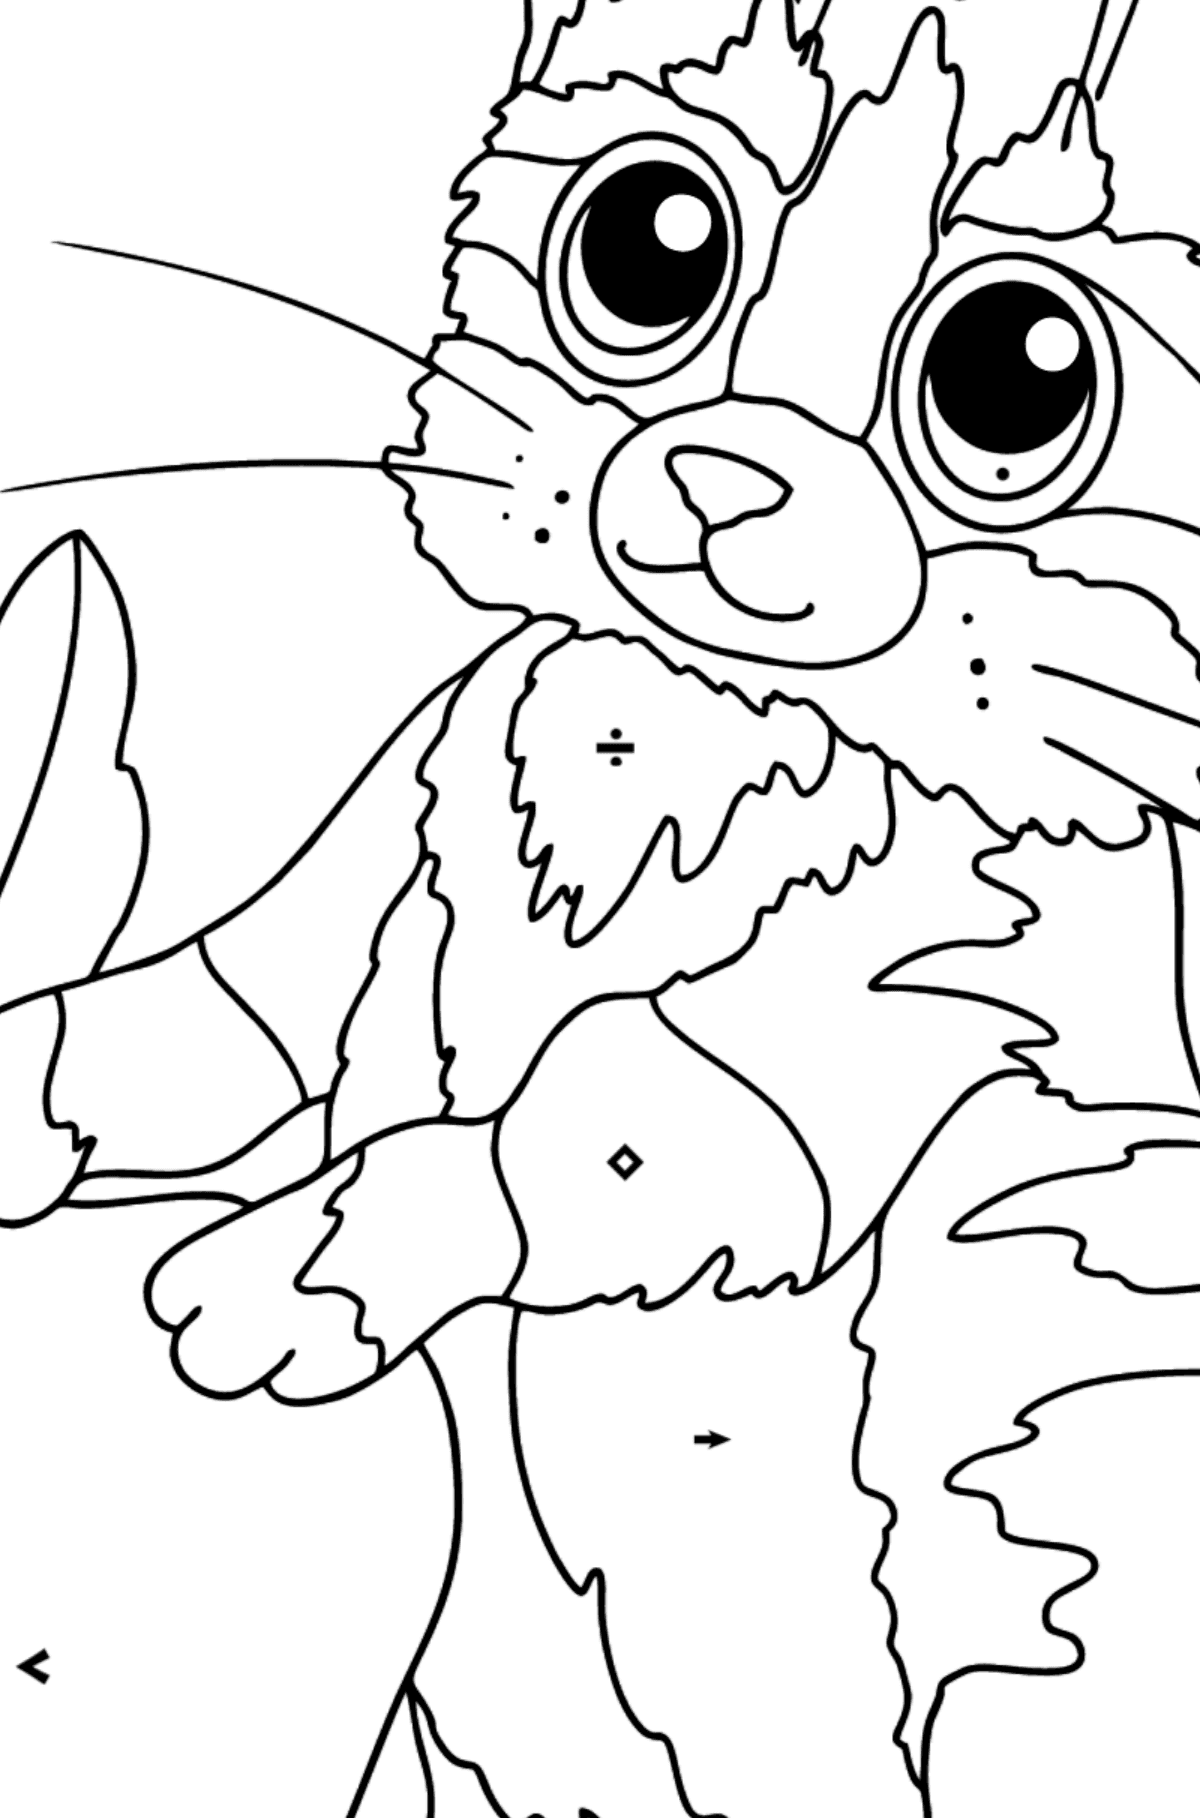 A Kitten is Playing with an Apple - Stampy cat coloring page - Coloring by Symbols for Kids